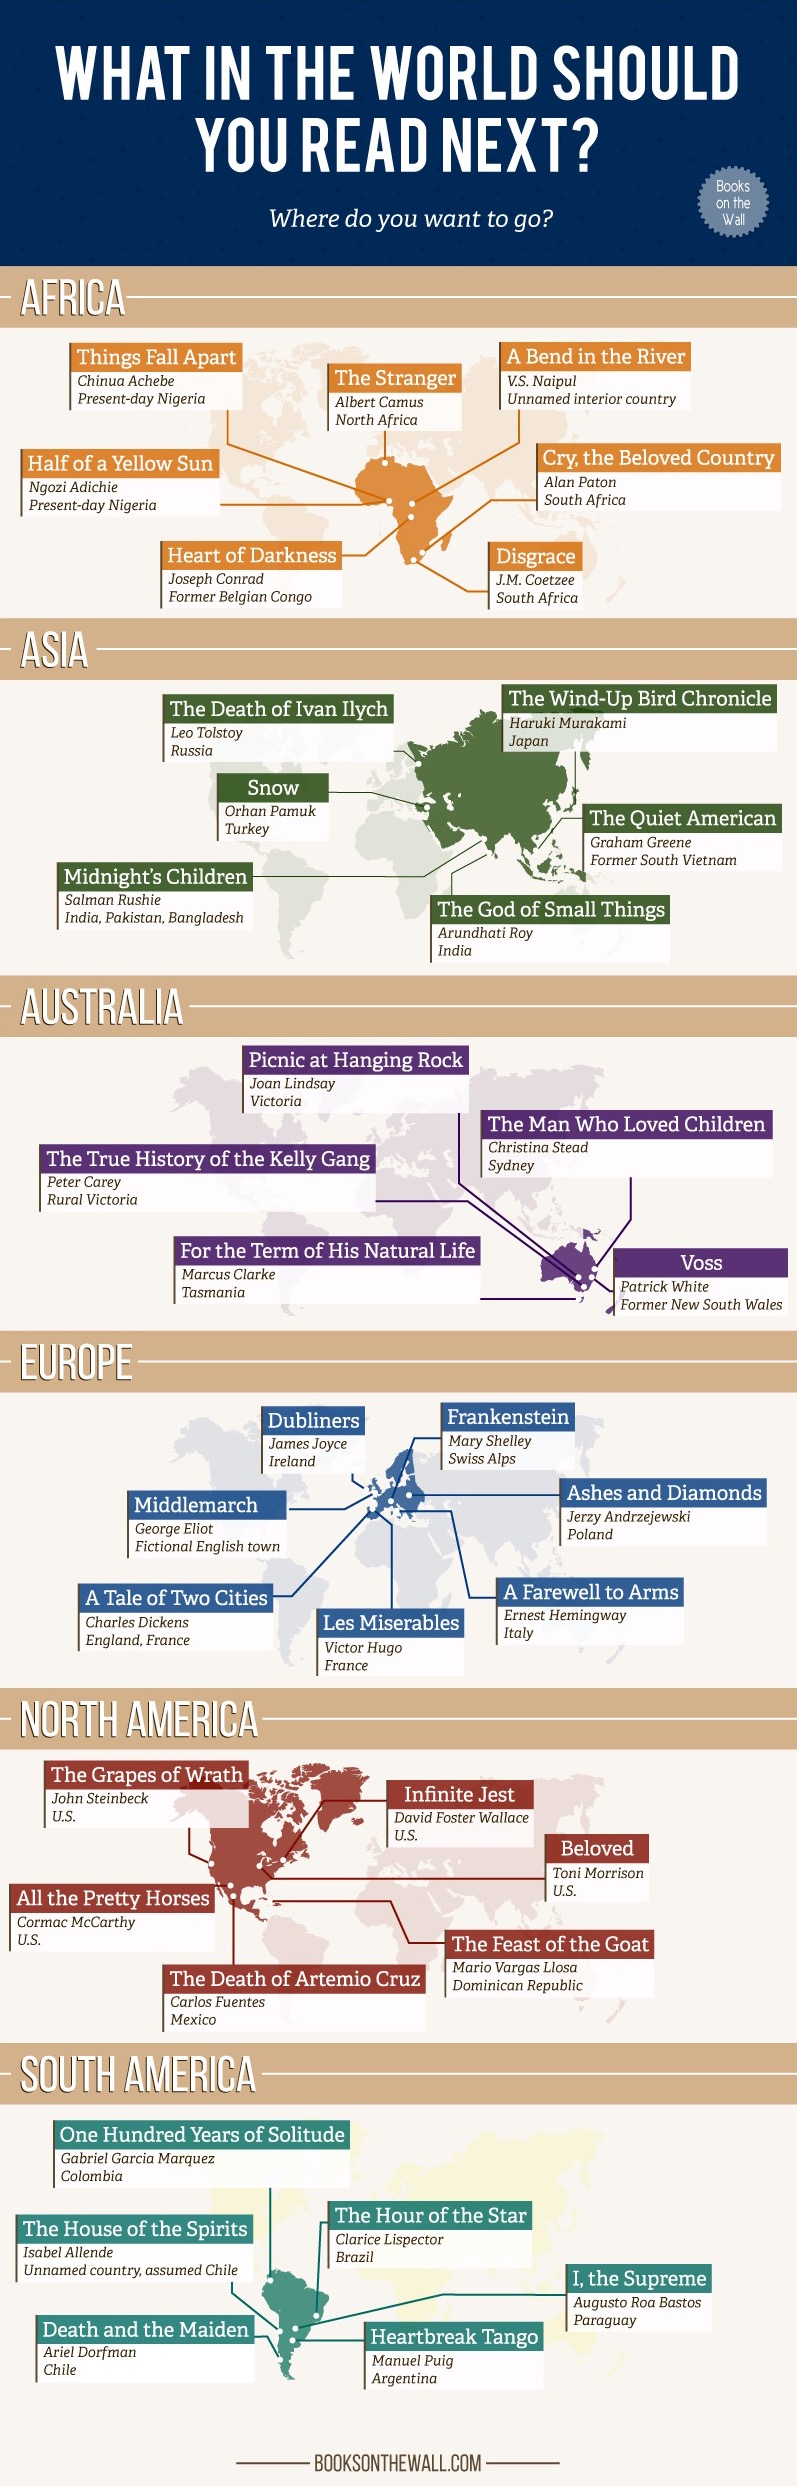 Around the world in 37 books #linfographic